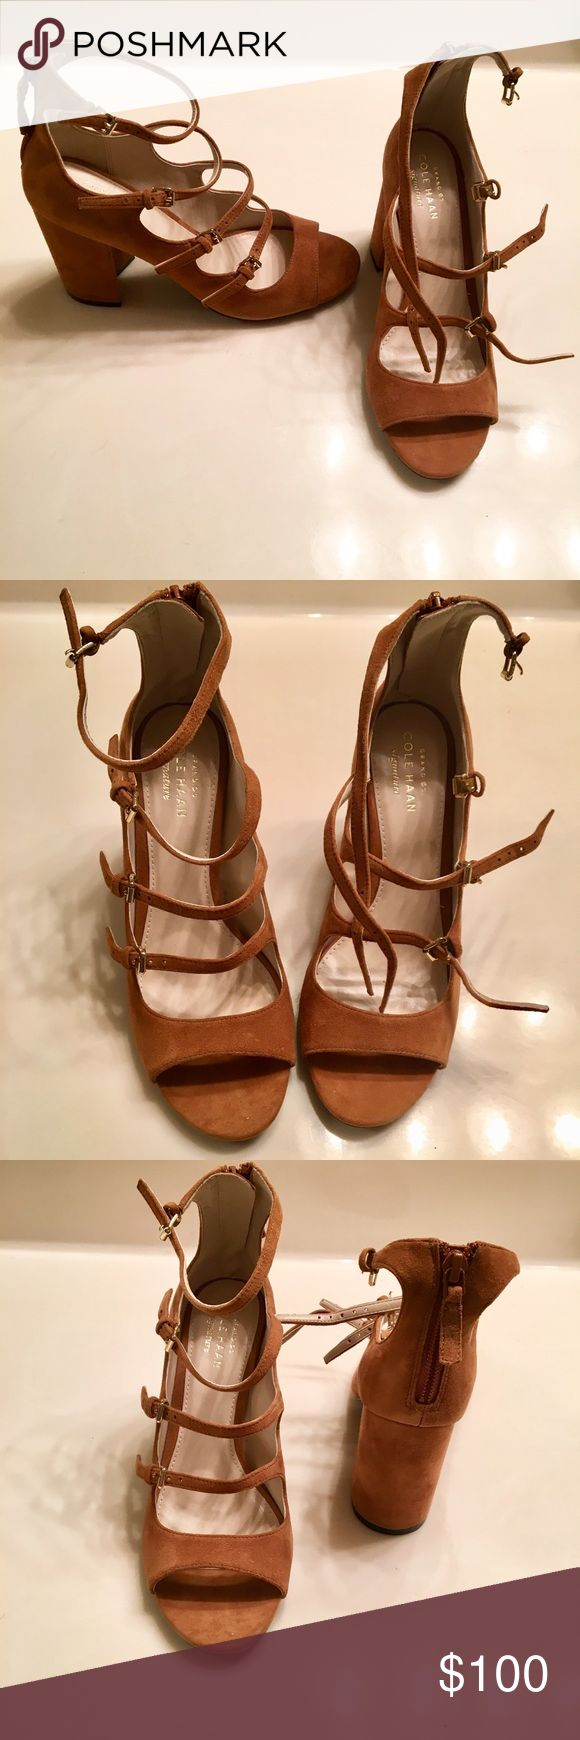 Cole Haan Suede shoes BRAND NEW with box. suede camel color size 5 strappy heels Cole Haan Shoes Heels